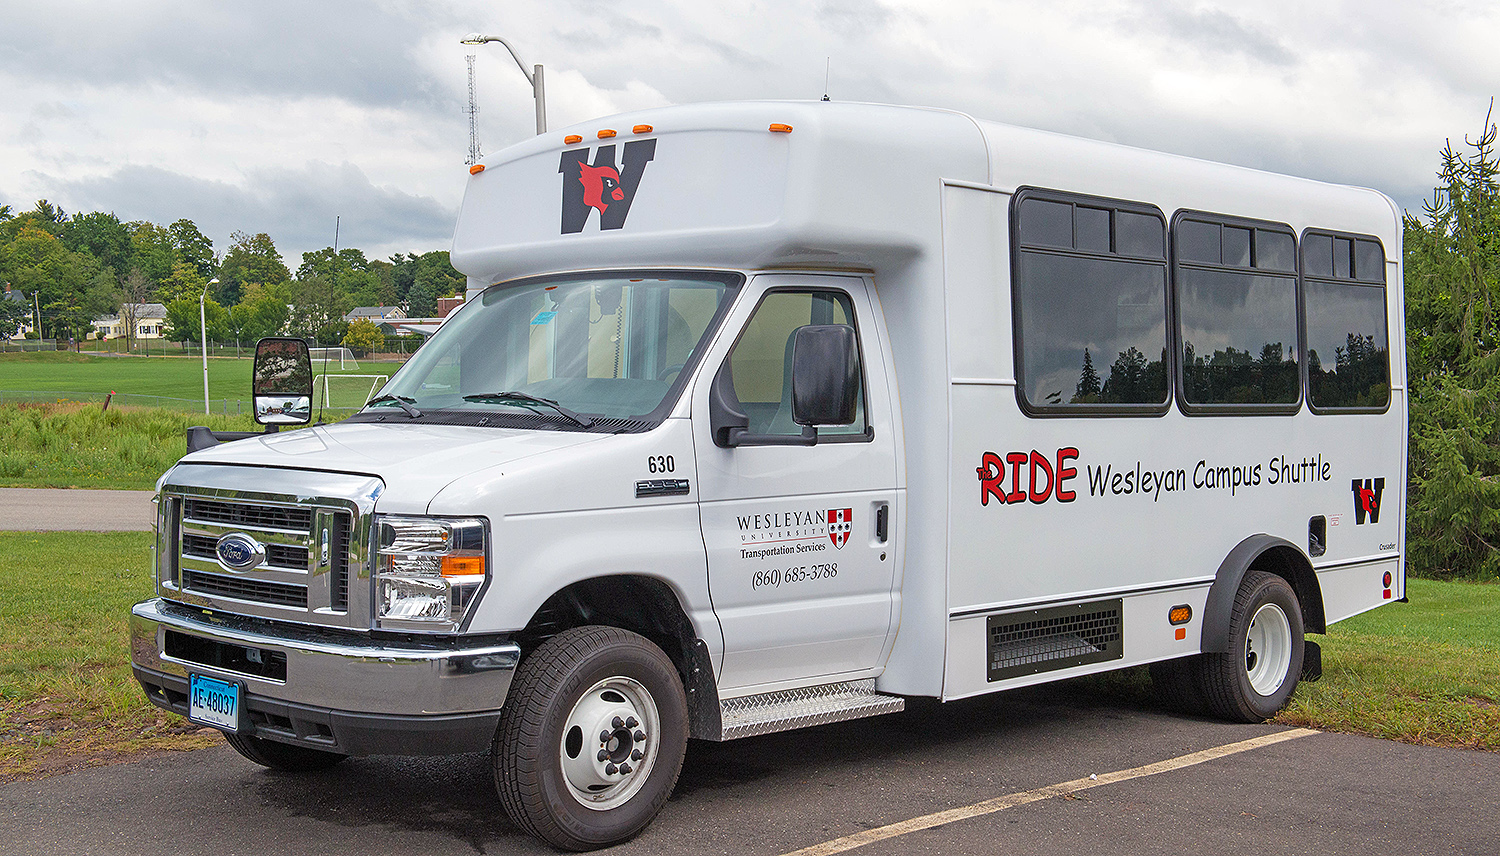 Wesleyan's Transportation Department announces the addition of a new 14-passenger bus to the Wesleyan RIDE system fleet.